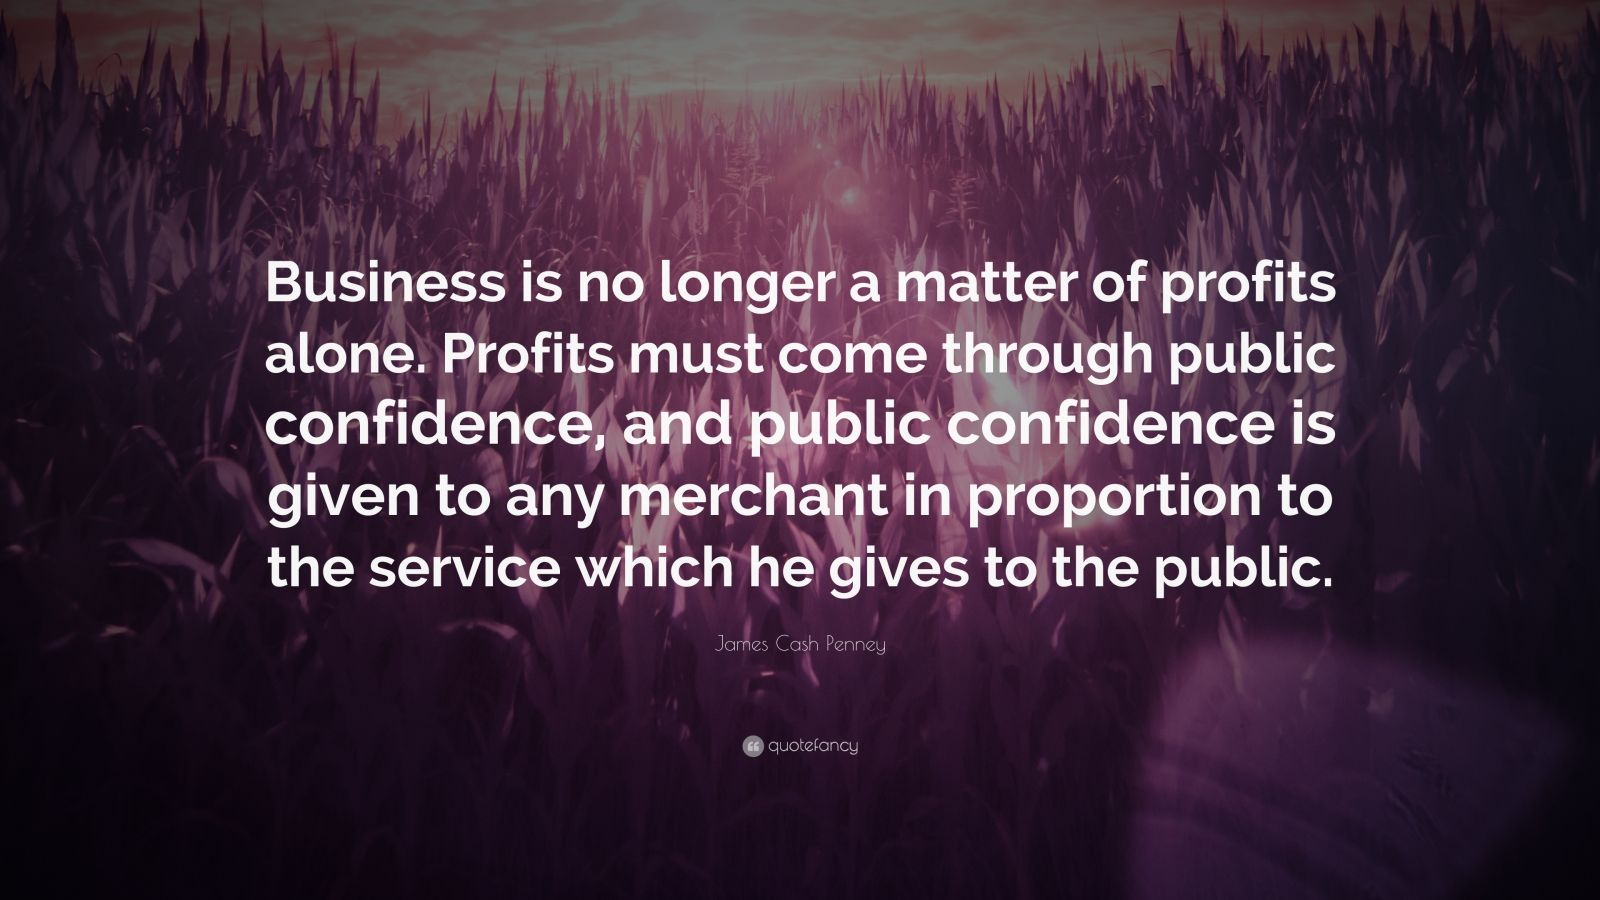 """James Cash Penney Quote: """"Business is no longer a matter of profits alone. Profits must come through public confidence, and public confidence is given to any merchant in proportion to the service which he gives to the public."""""""